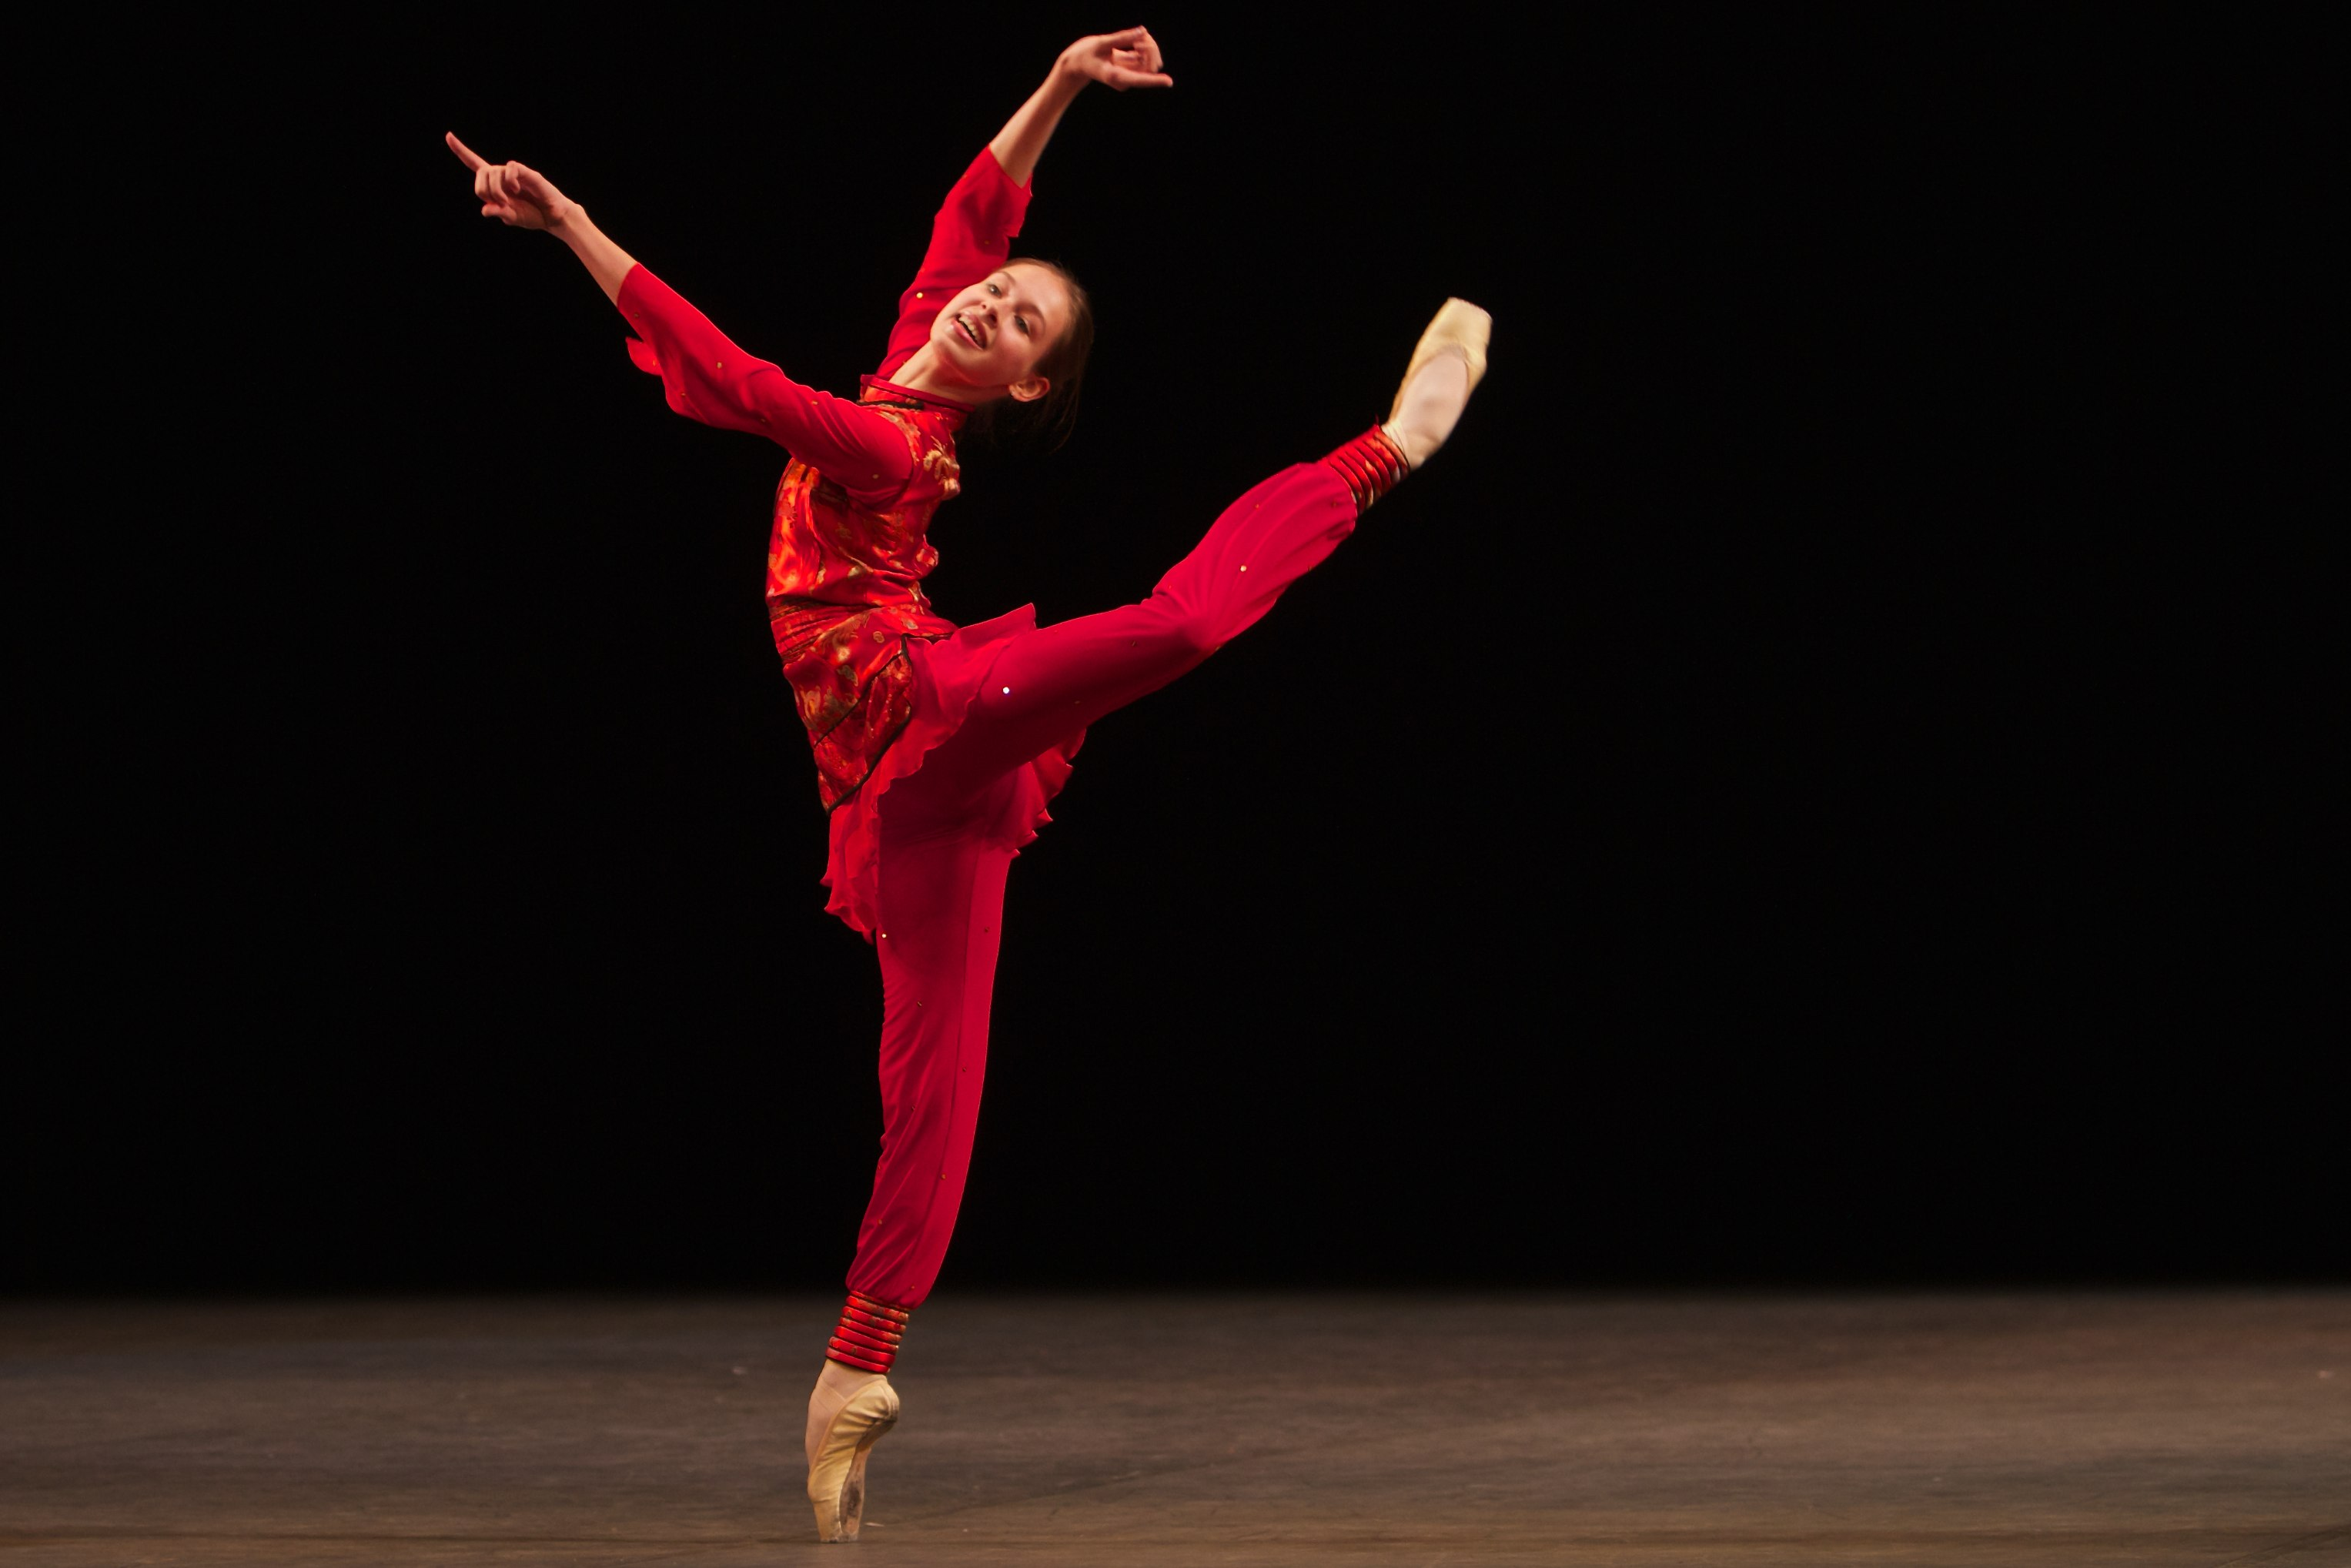 dancer stands on pointe in a red costume